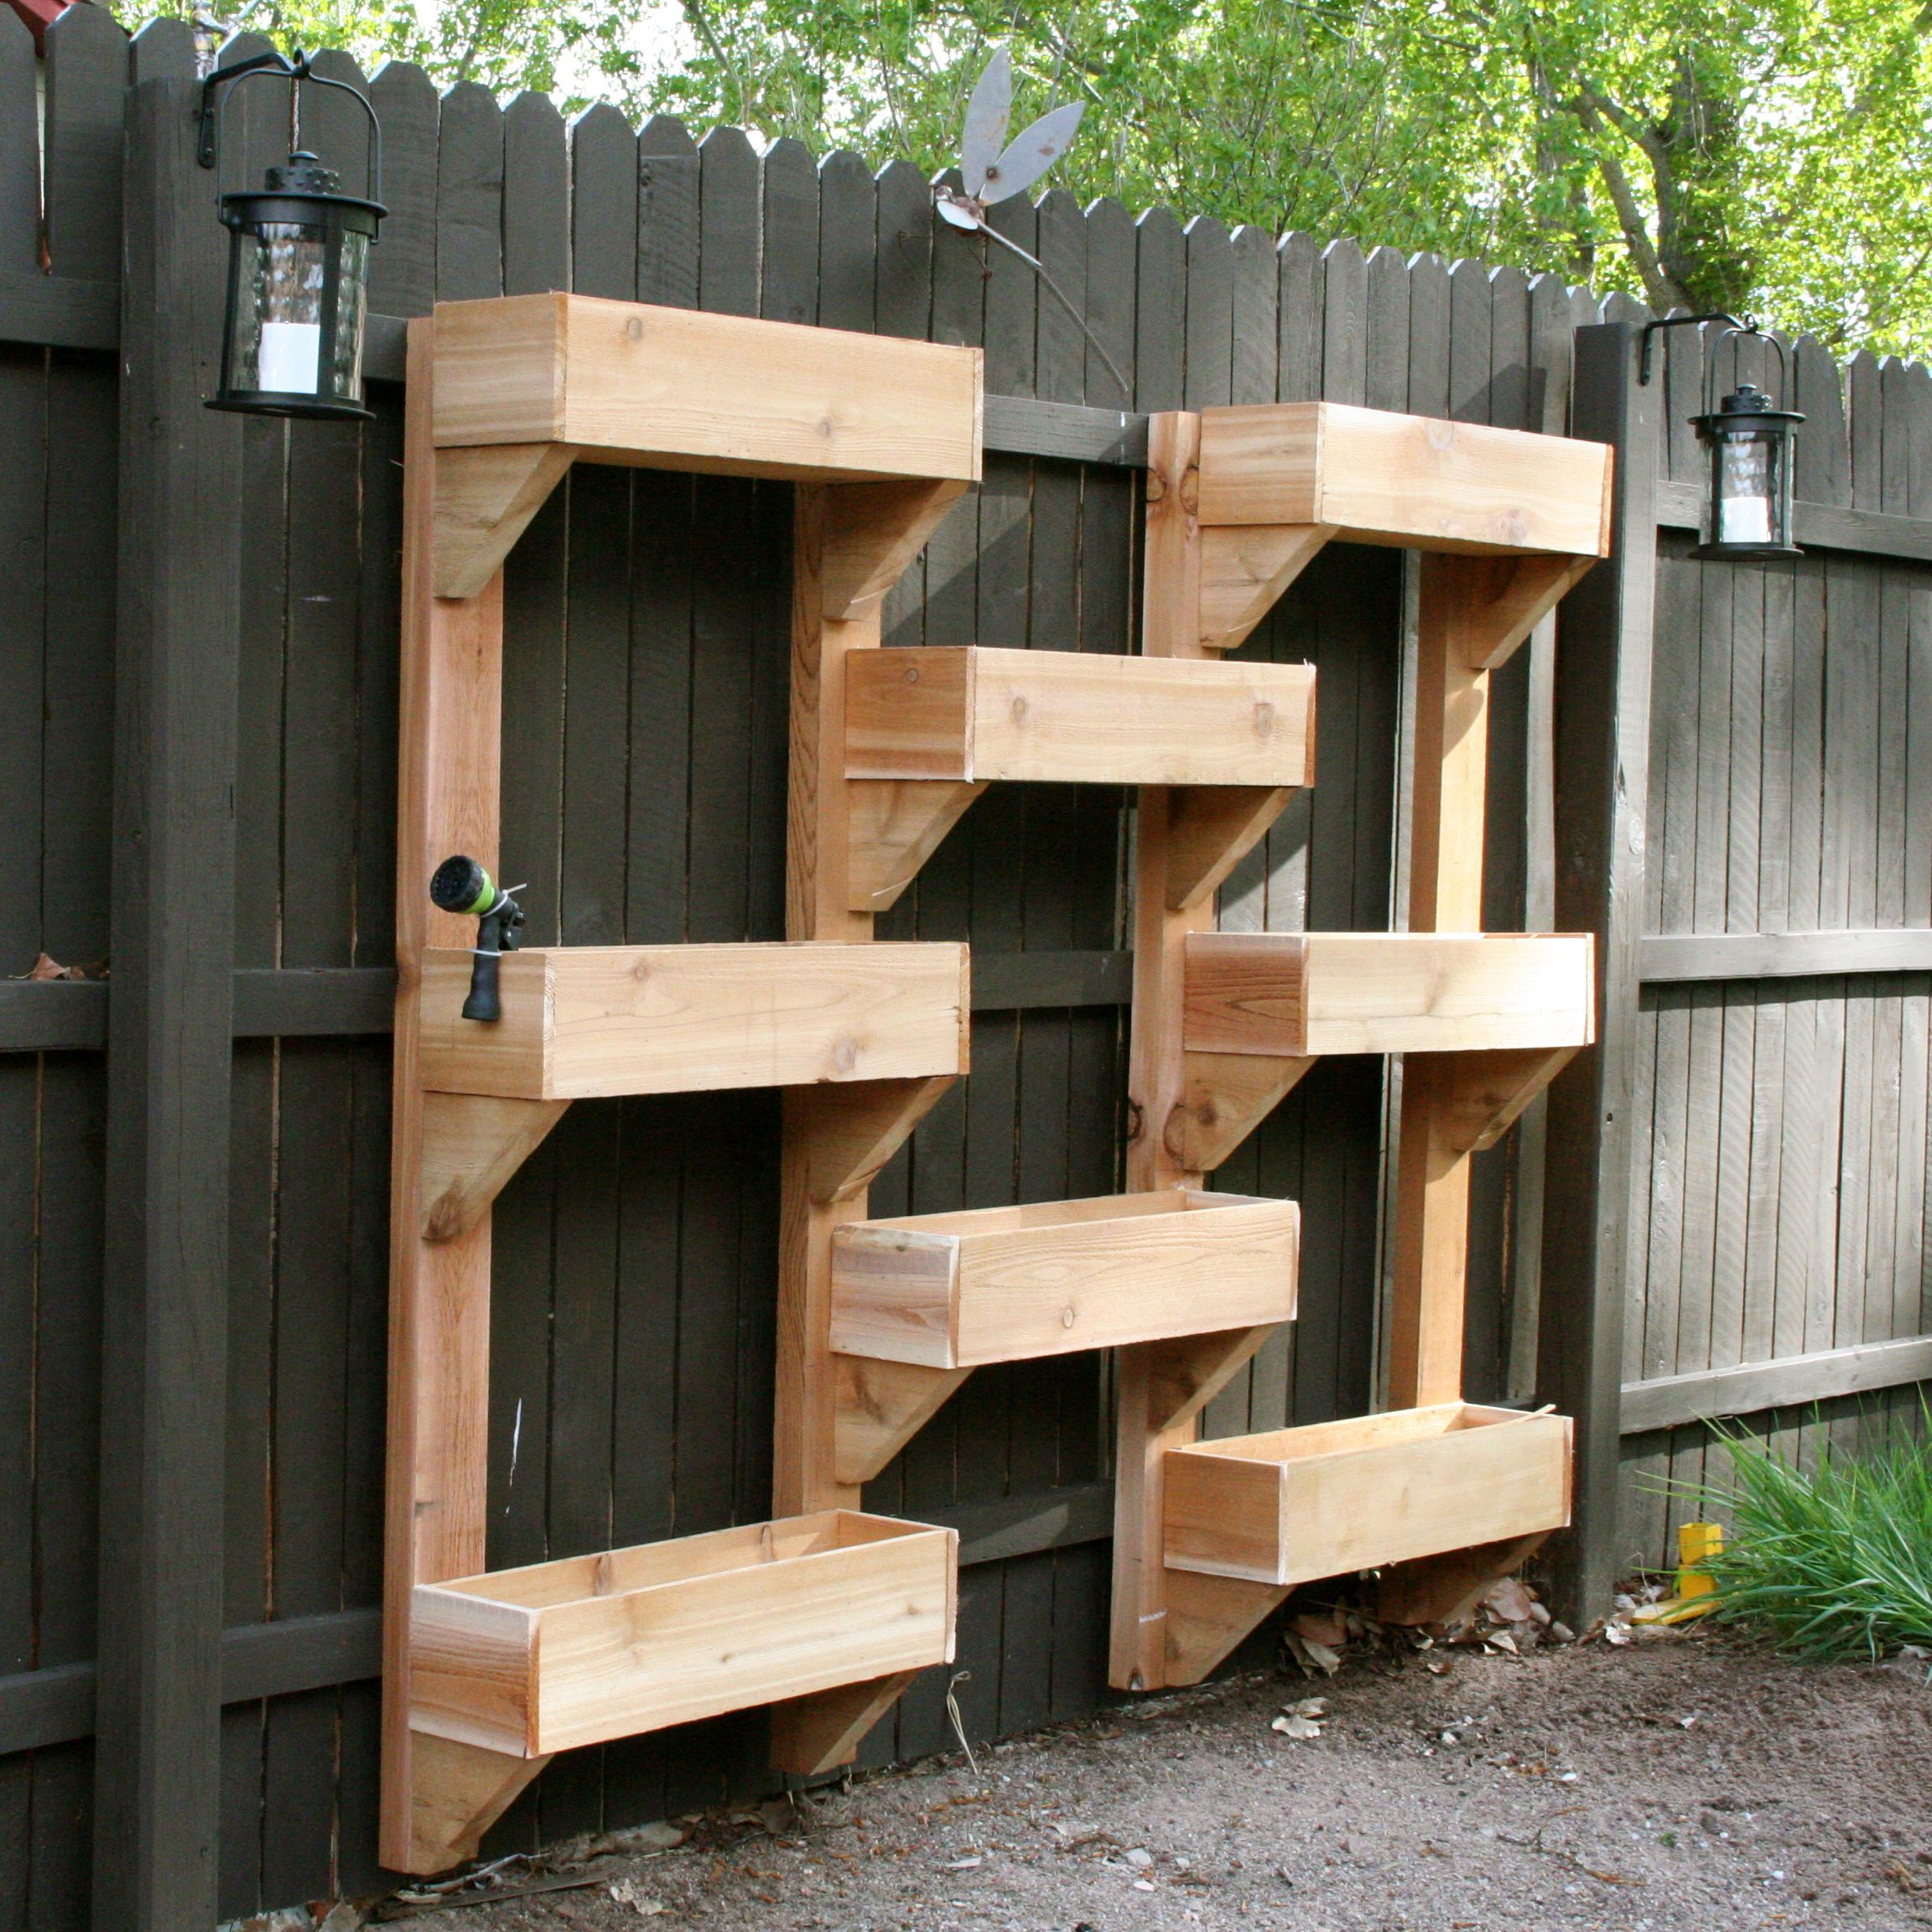 DIY Vertical Gardens - Are They All Safe? -